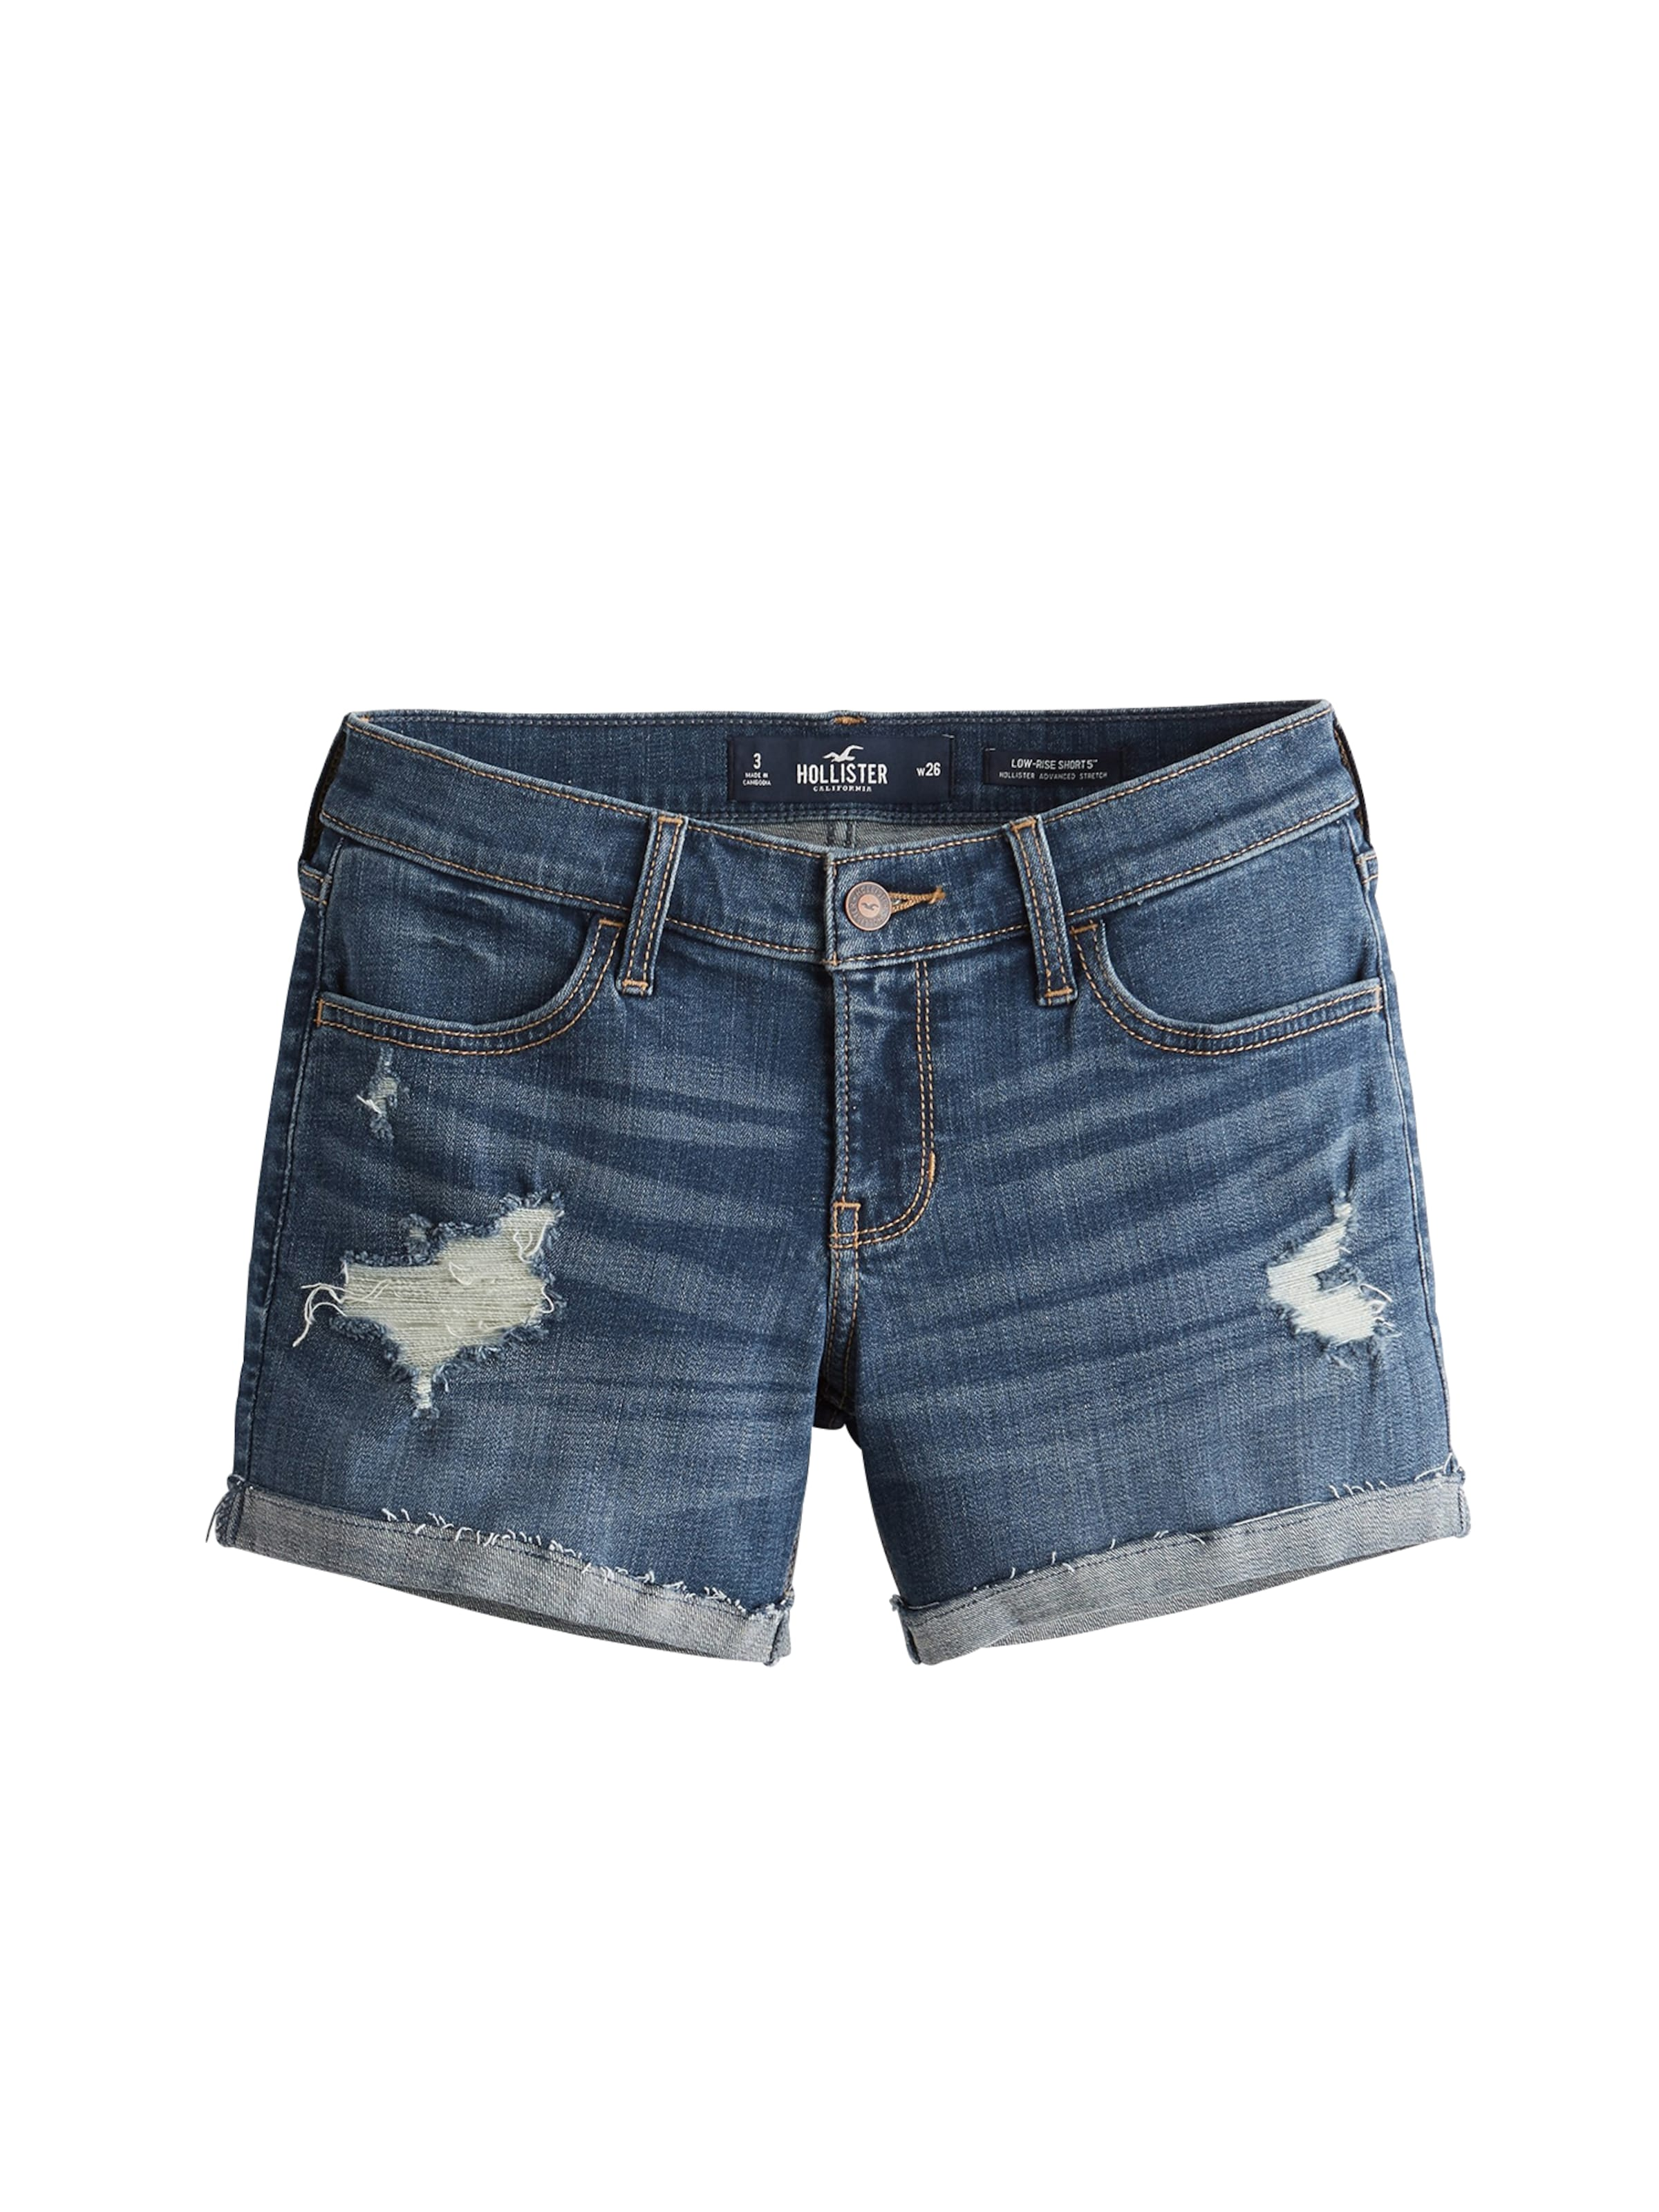 Blue Shorts Hollister Hollister Shorts Denim In In Blue eDW9EH2IYb